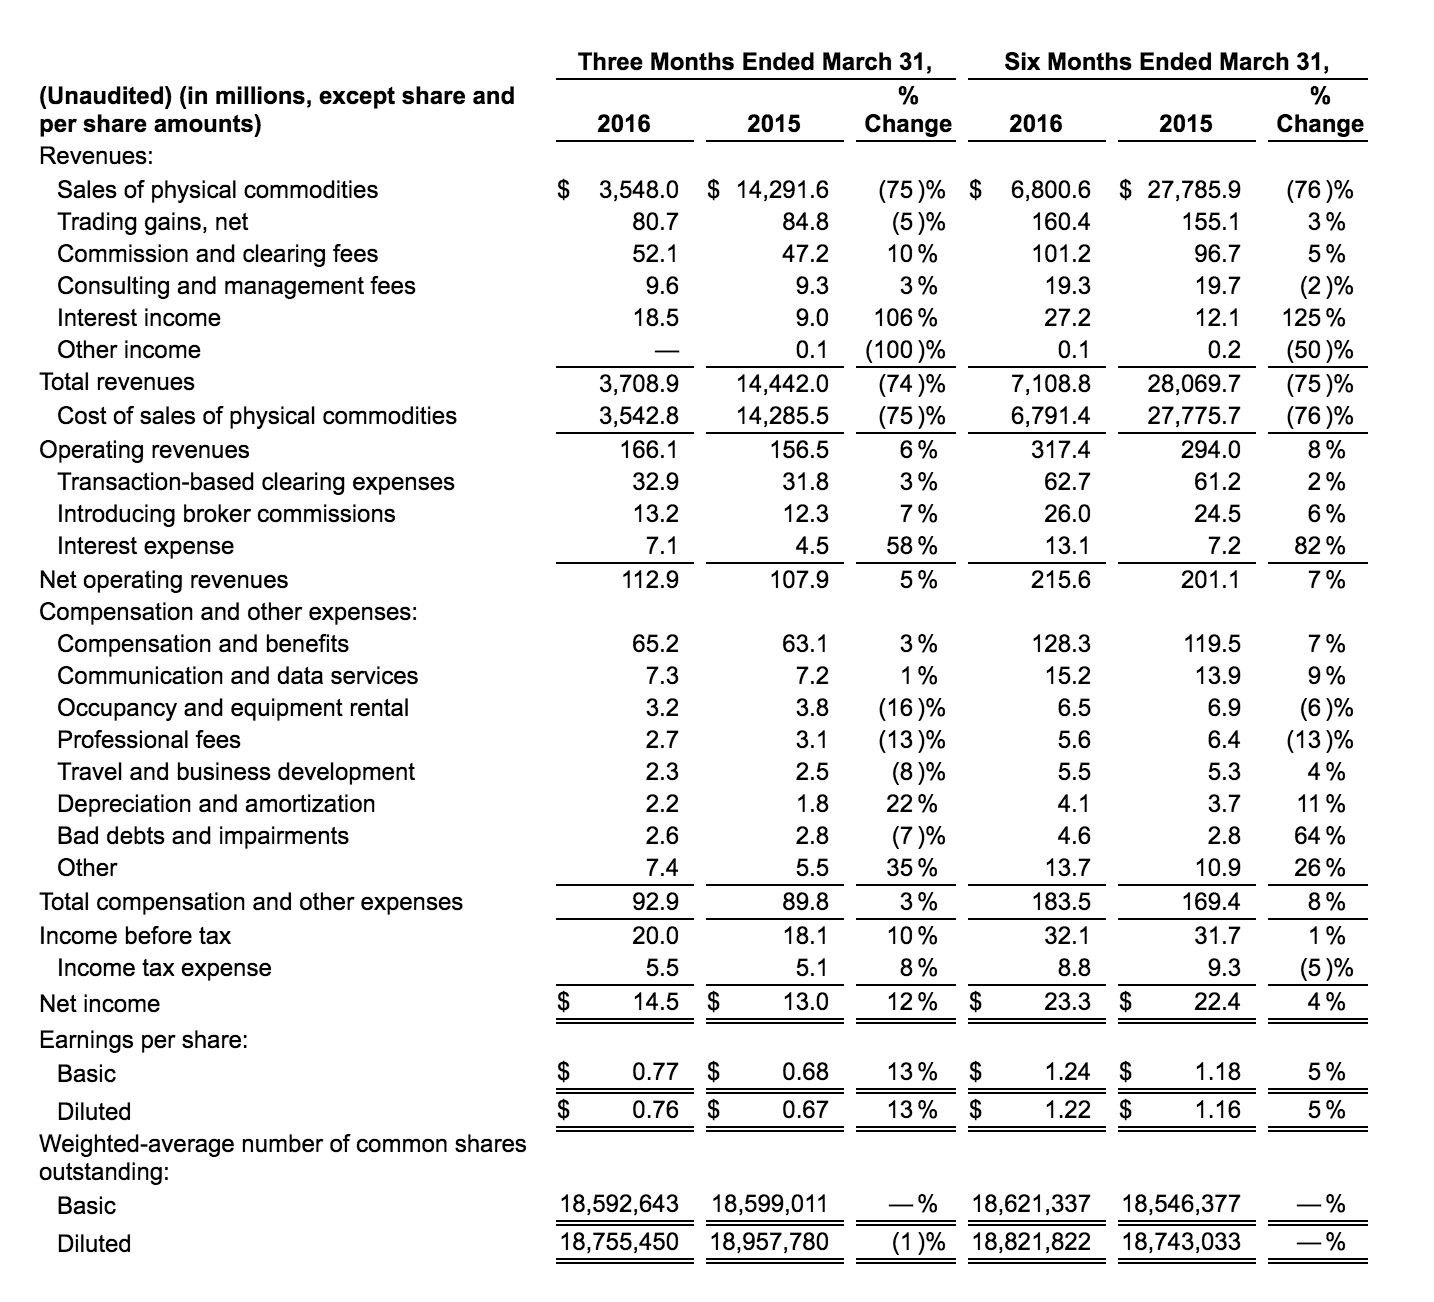 Source:  INTL FCStone Q2 2016 fiscal year financials